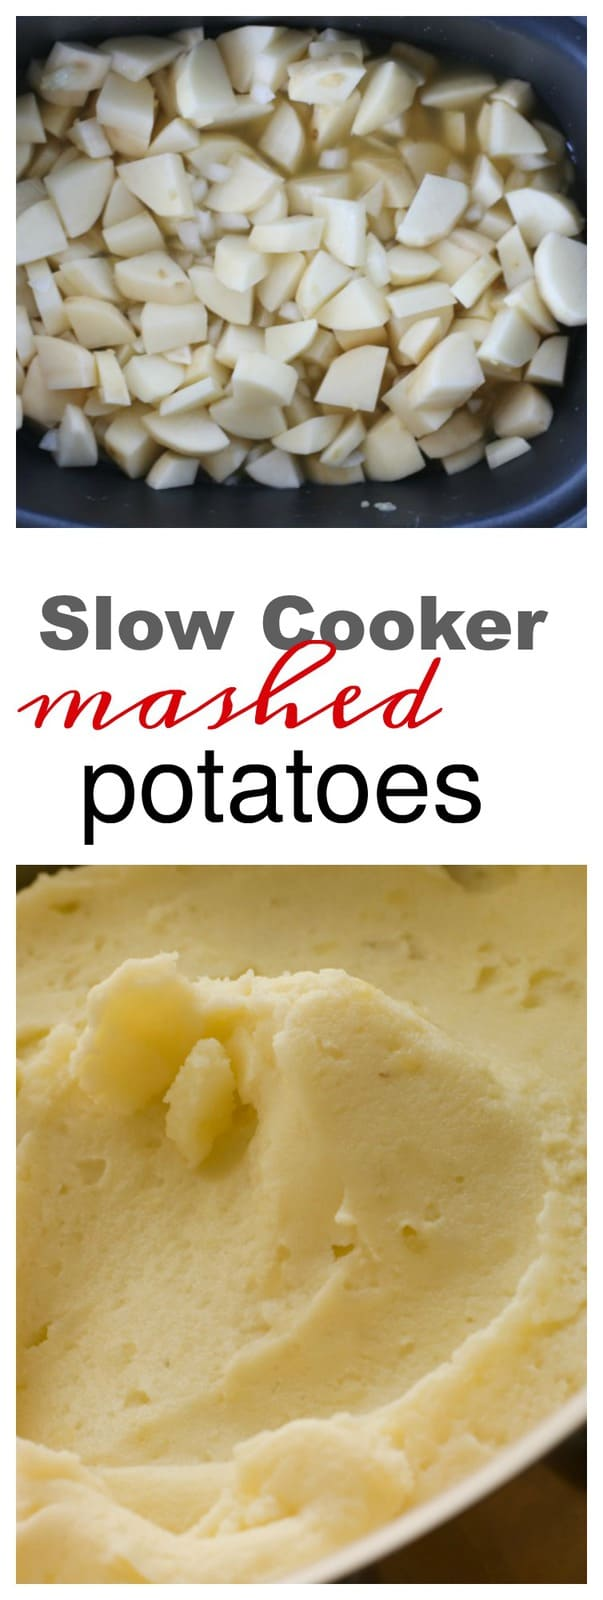 Text above a close up of mashed potatoes.